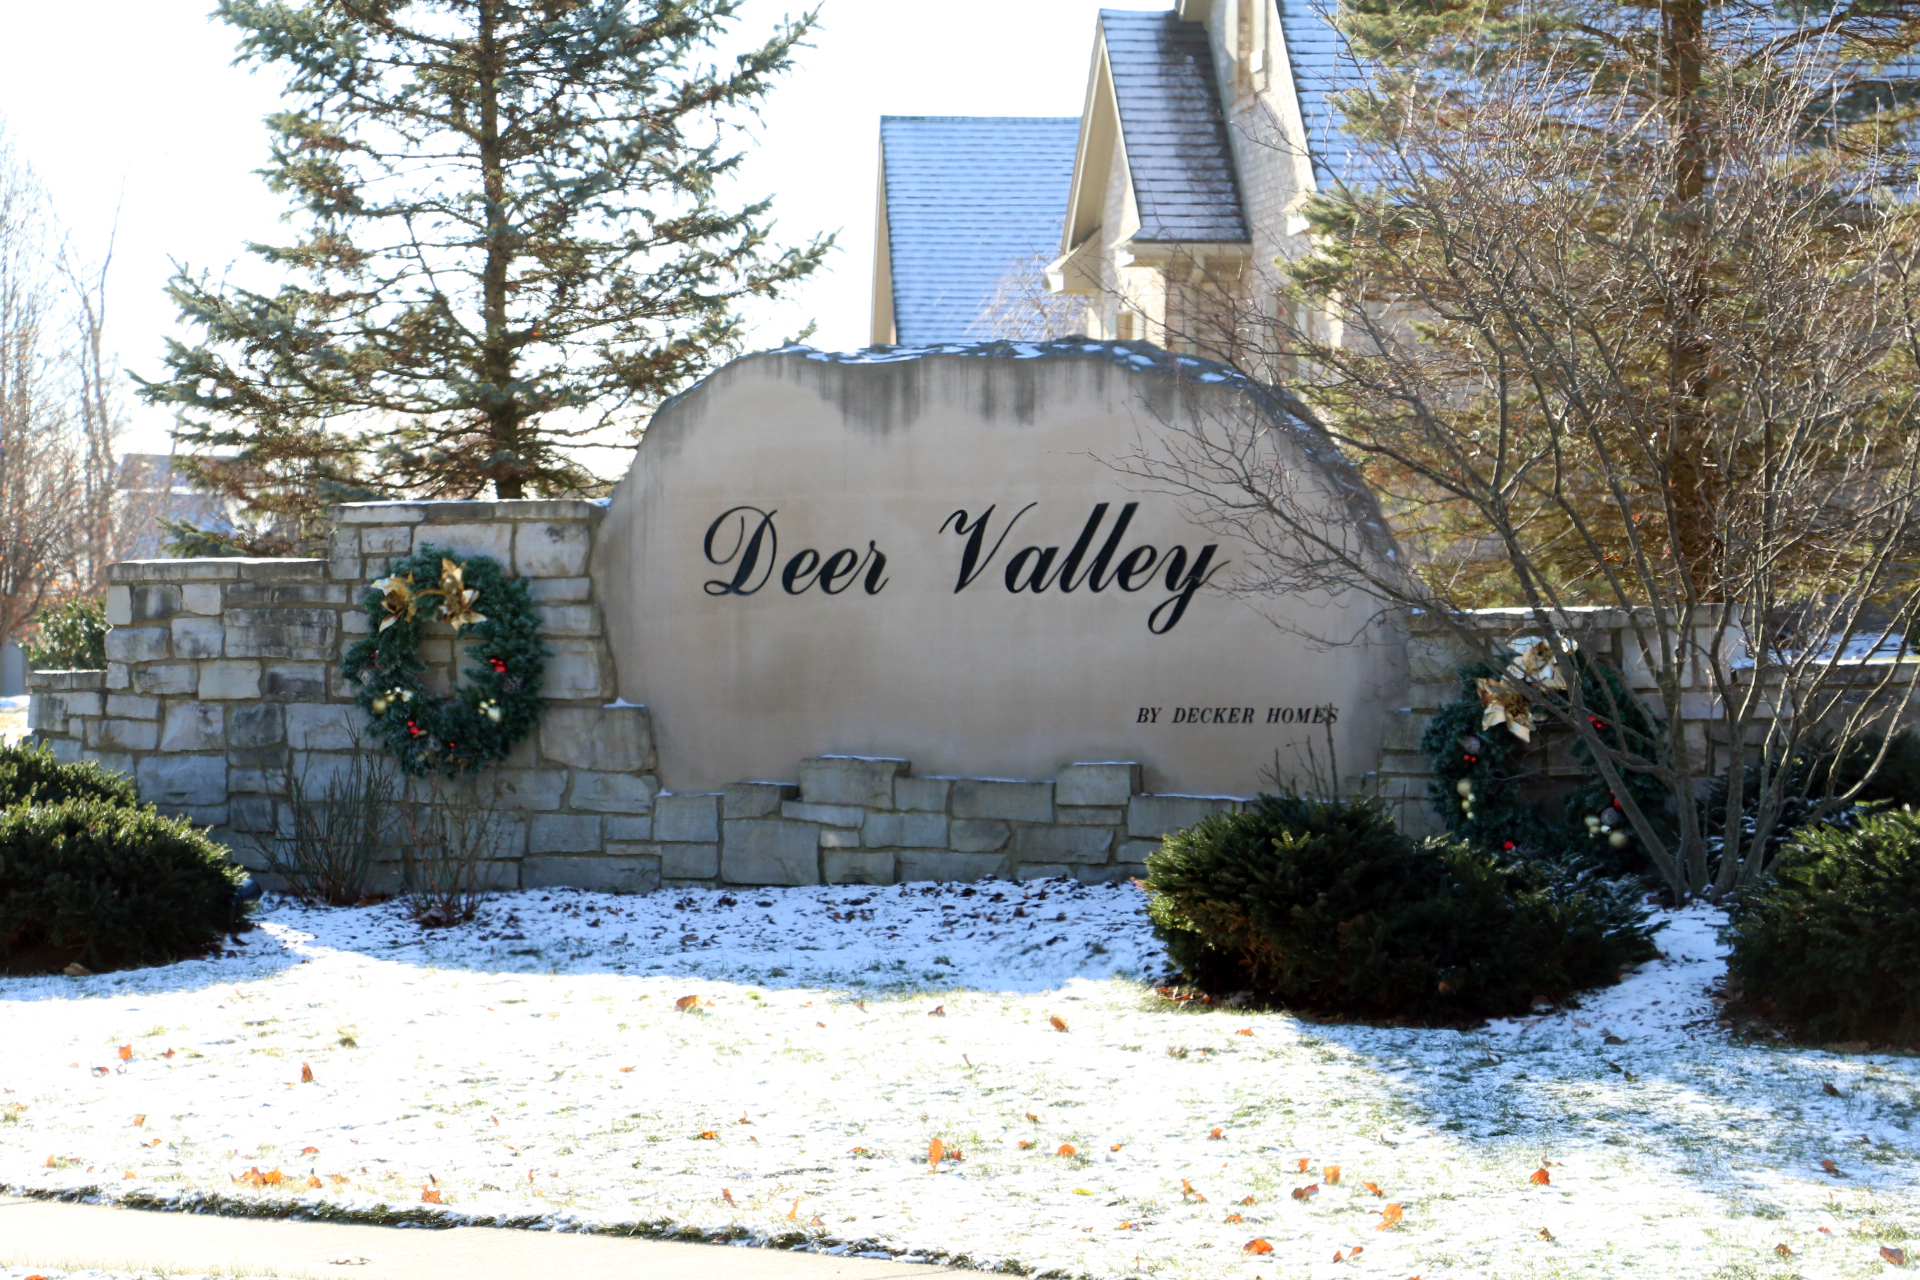 Deer Valley Homes for Sale & Deer Valley Real Estate